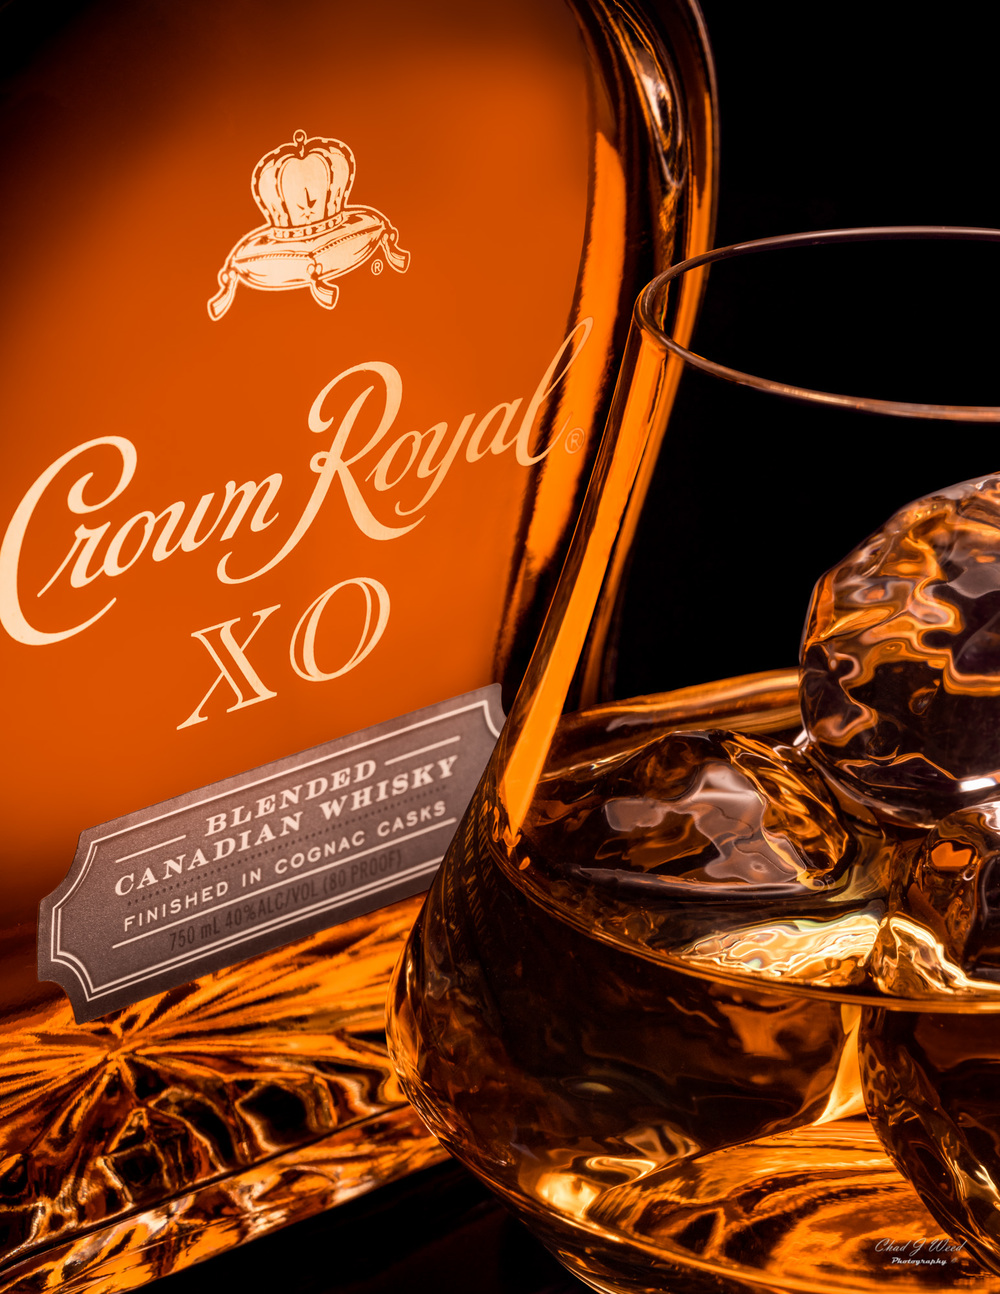 Crown Royal XO Whiskey by Arizona Commercial Beverage Photographer Chad J Weed